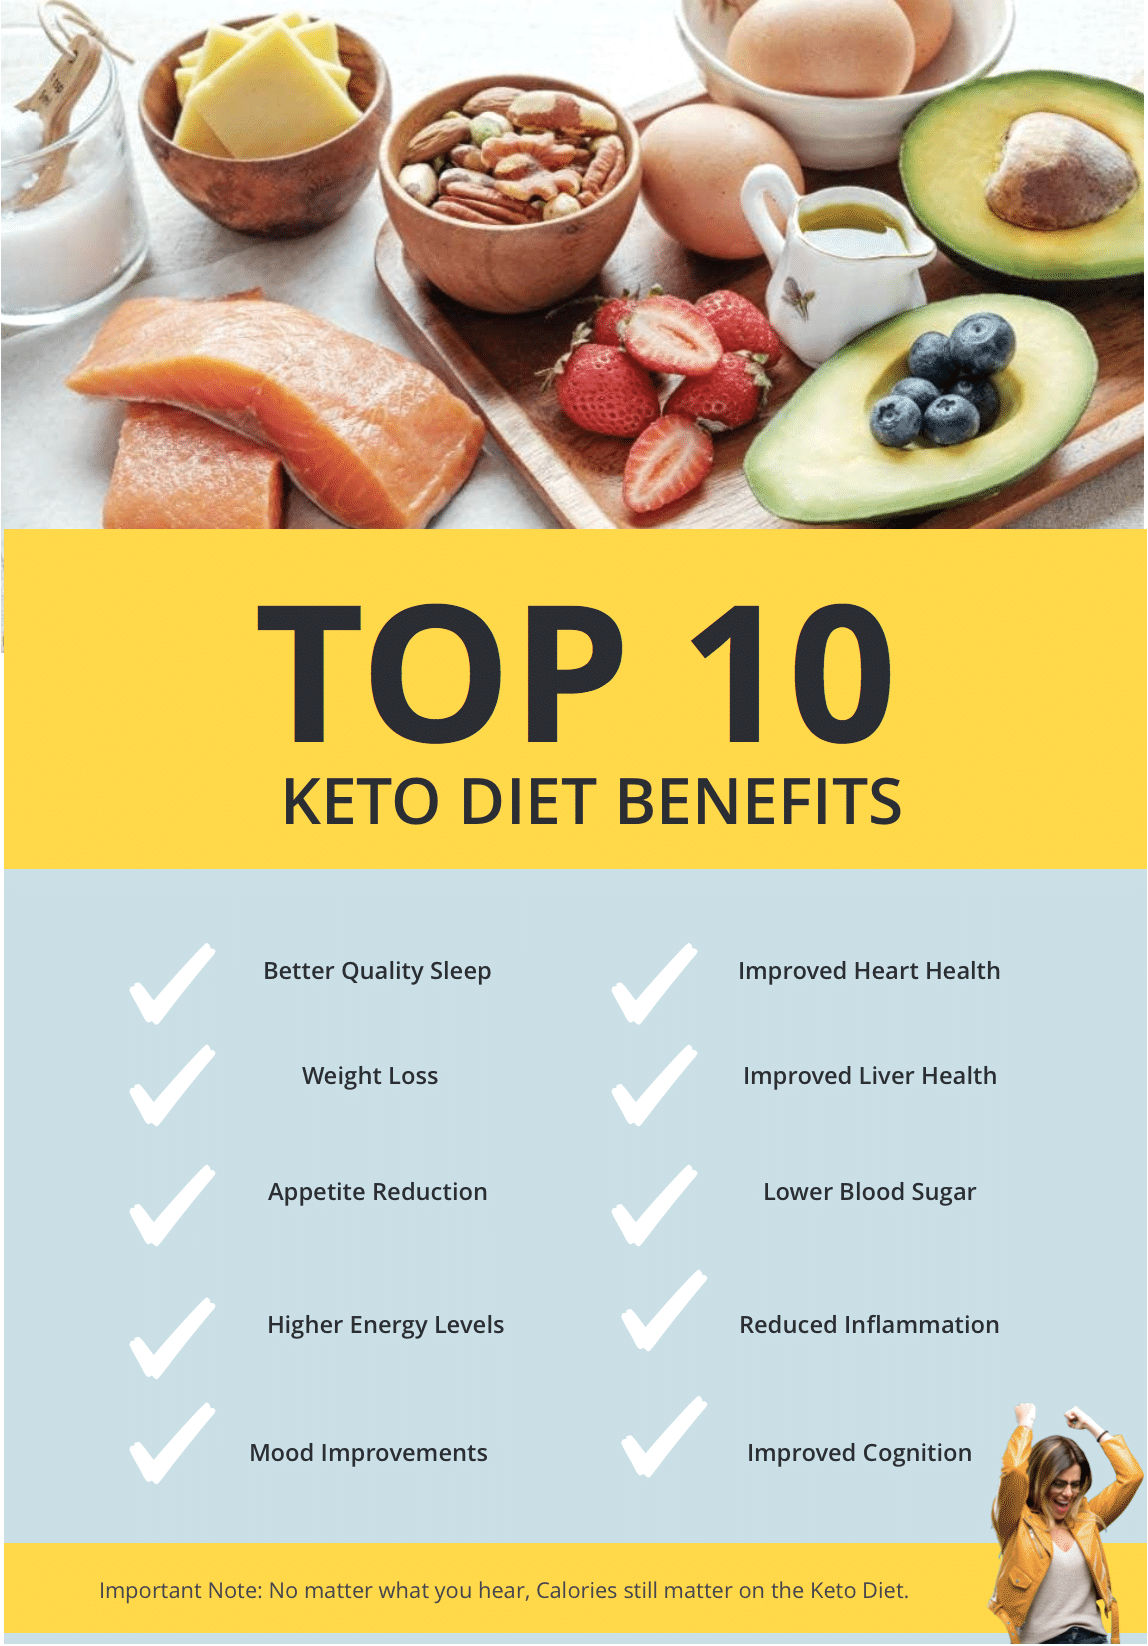 top 10 keto diet benefits to health